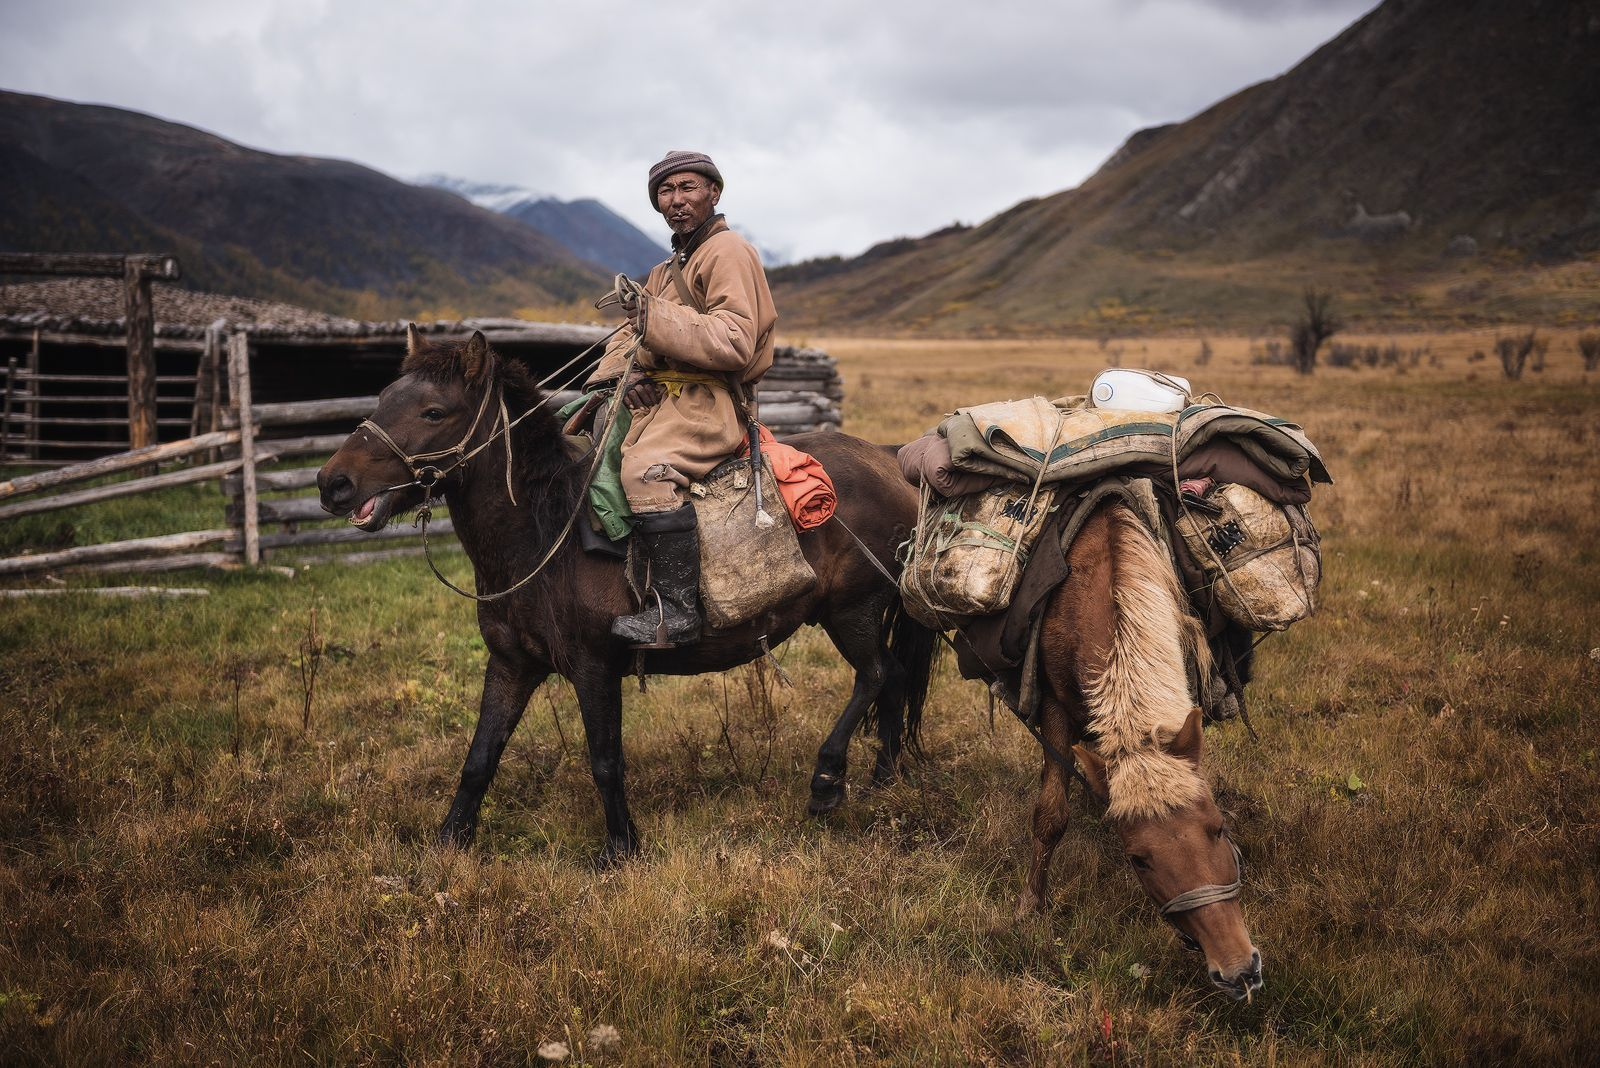 A traveling man pauses with his pack animals in northern Mongolia. Mongolia is the most sparsely populated sovereign nation in the world, with a population density of just five people per square mile.